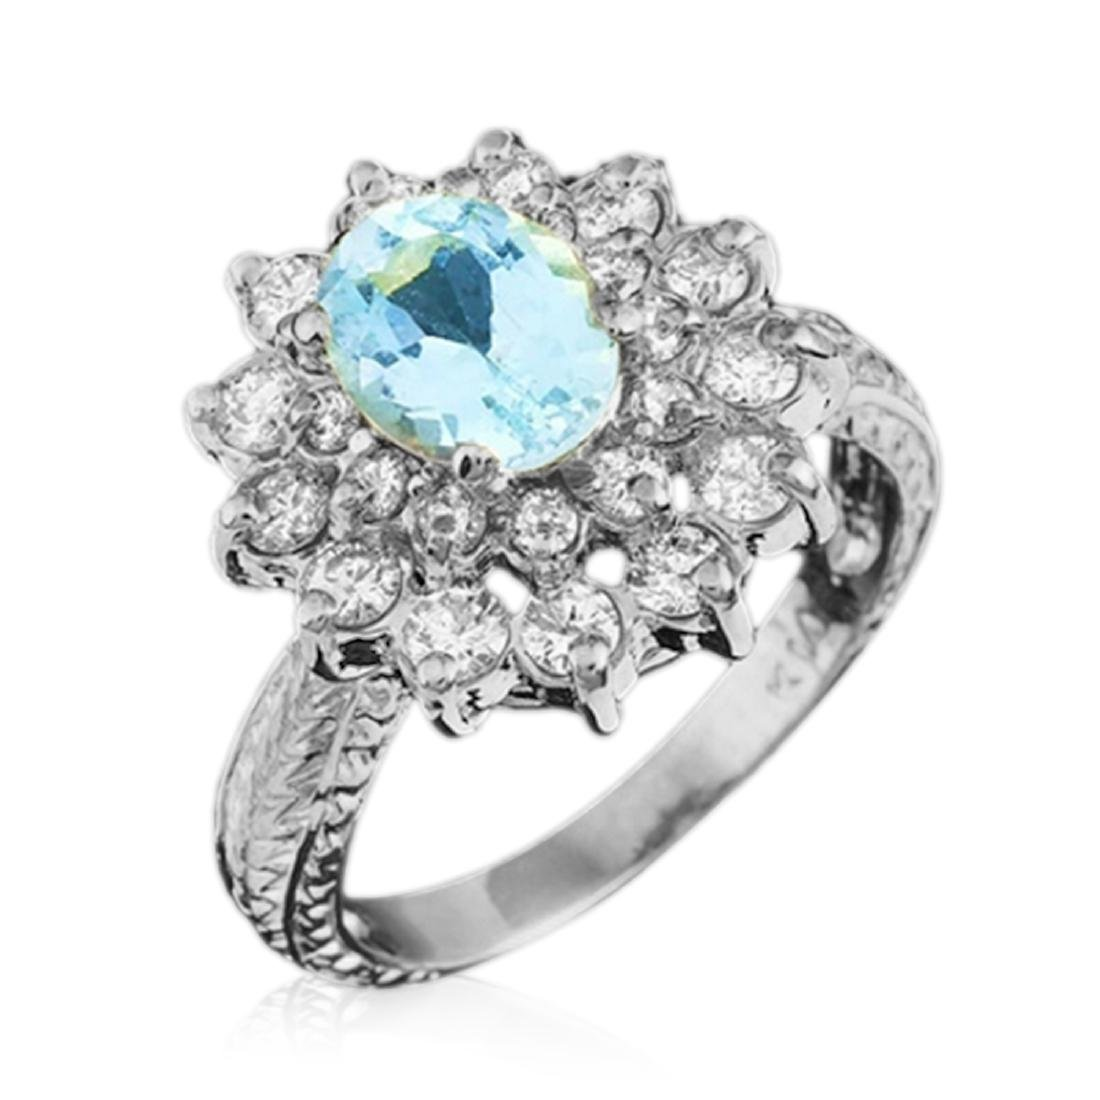 2.40 Carat Natural Aquamarine 18K Solid White Gold